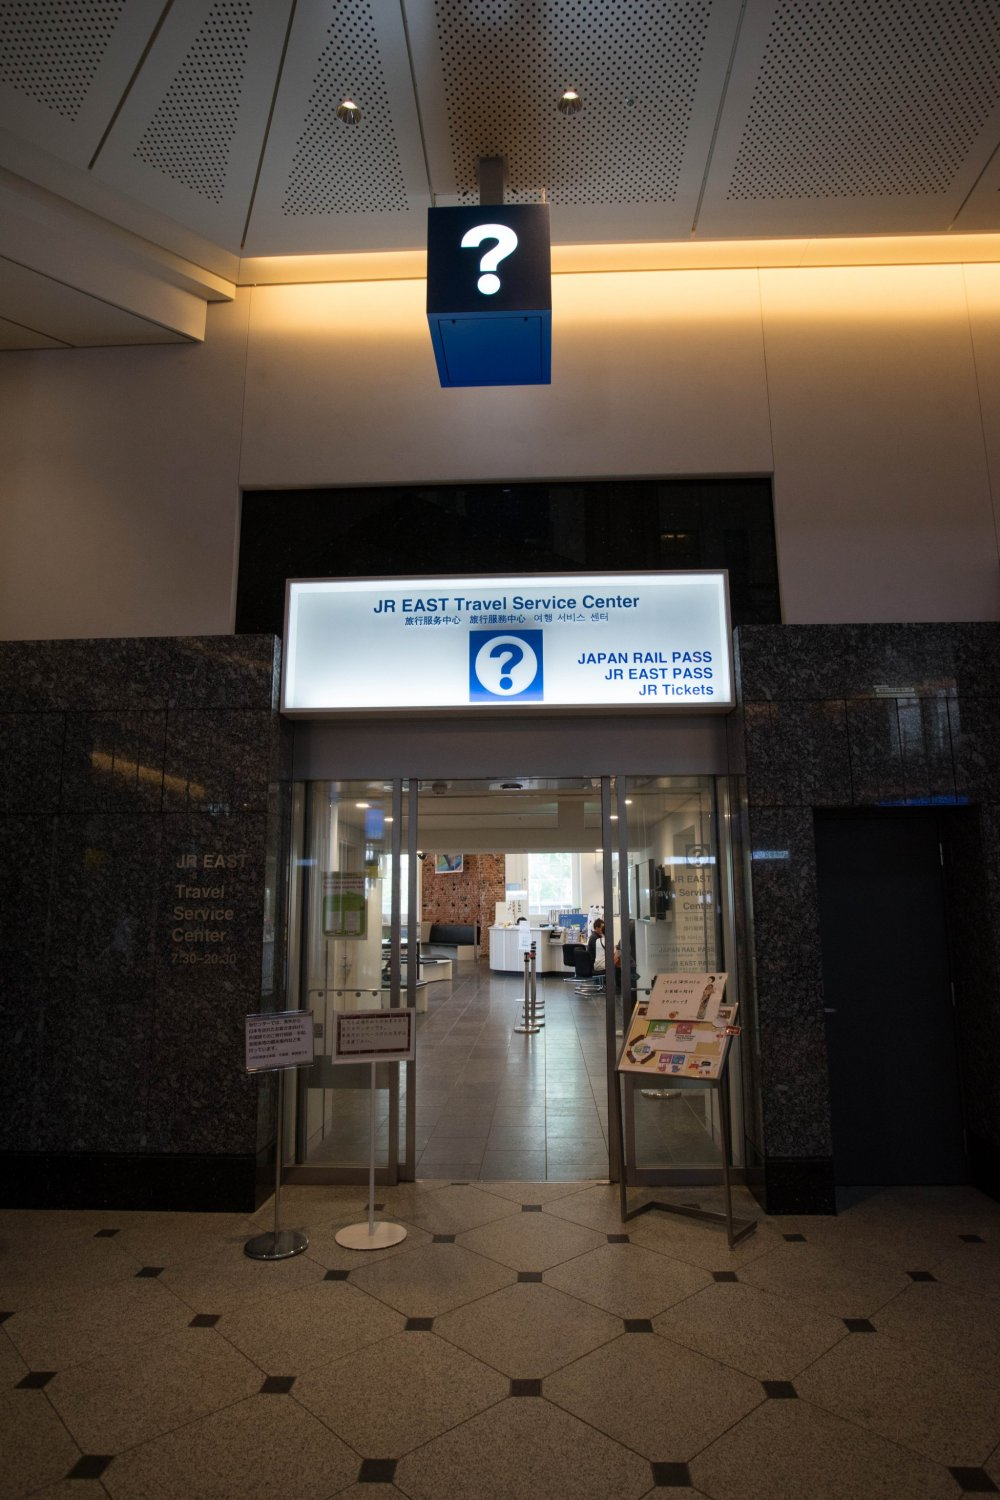 The JR East Travel Service Center where you can pick up useful information and your JR Pass